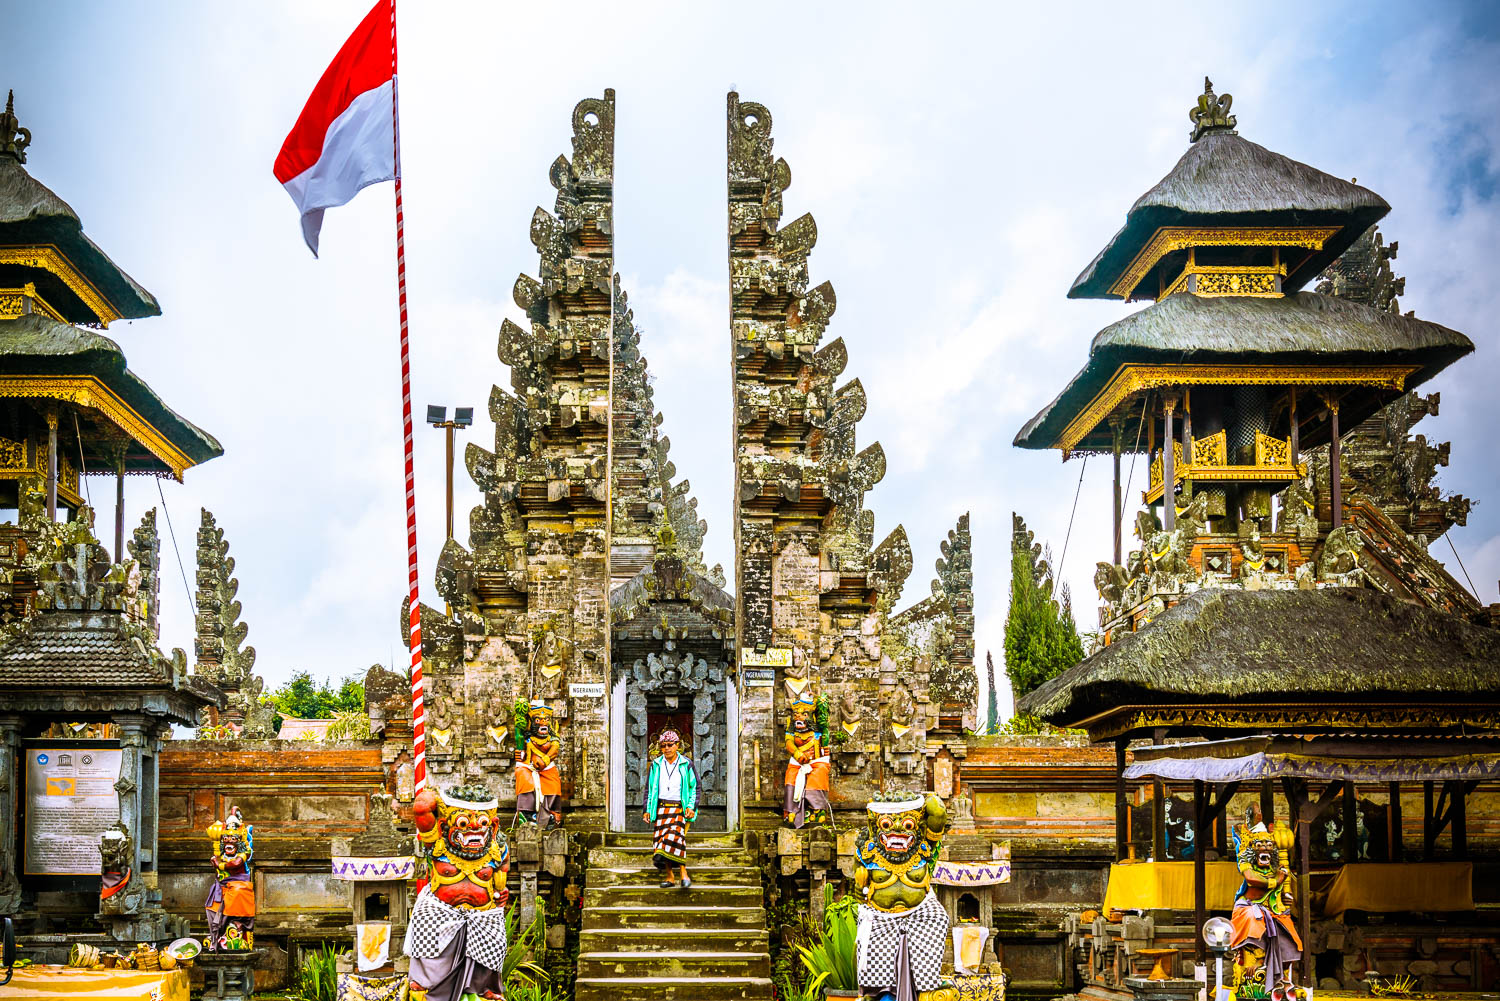 Ulun Danu Batur is the second most important directional temple on Bali.